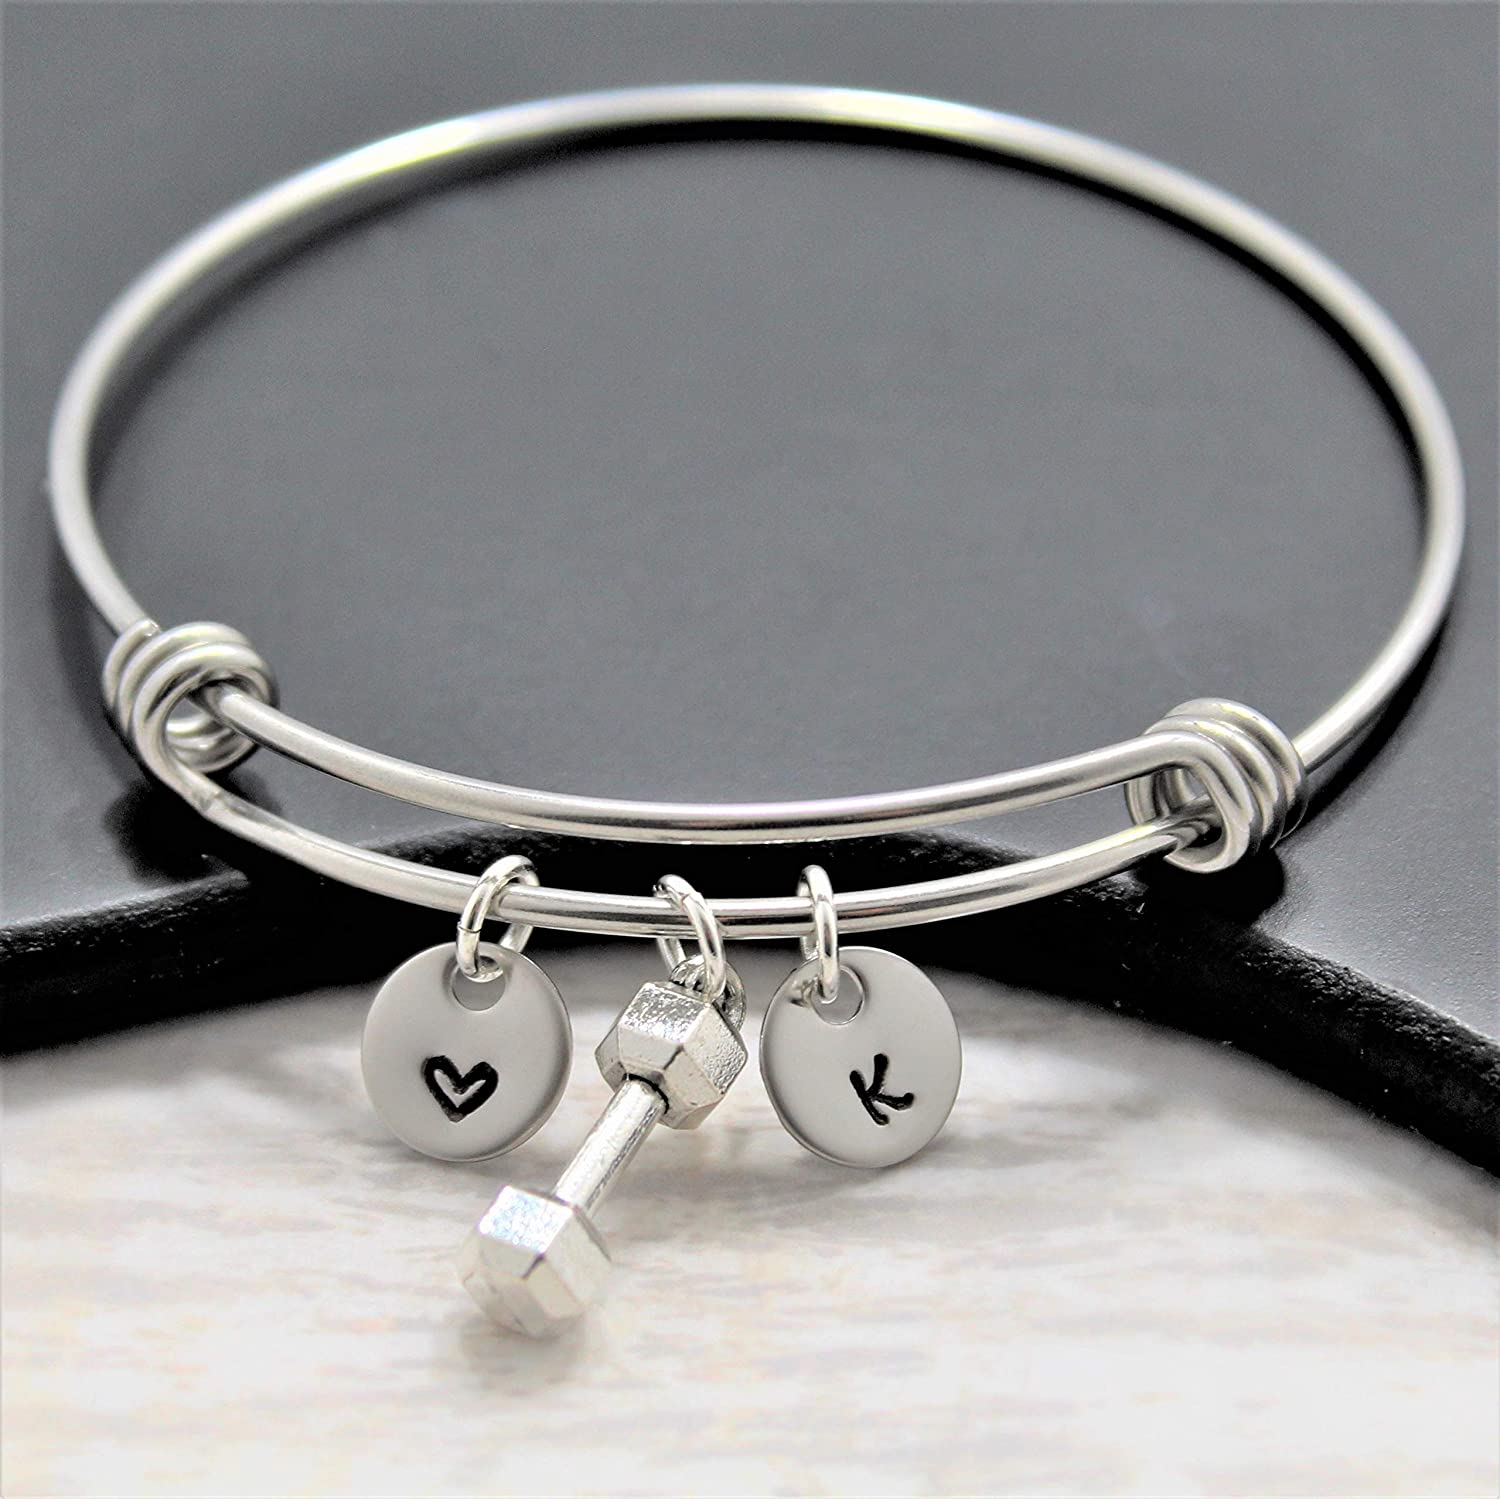 Dumbbell Charm Workout Bracelet for Women Personalized - Girls Max Max 57% OFF 50% OFF